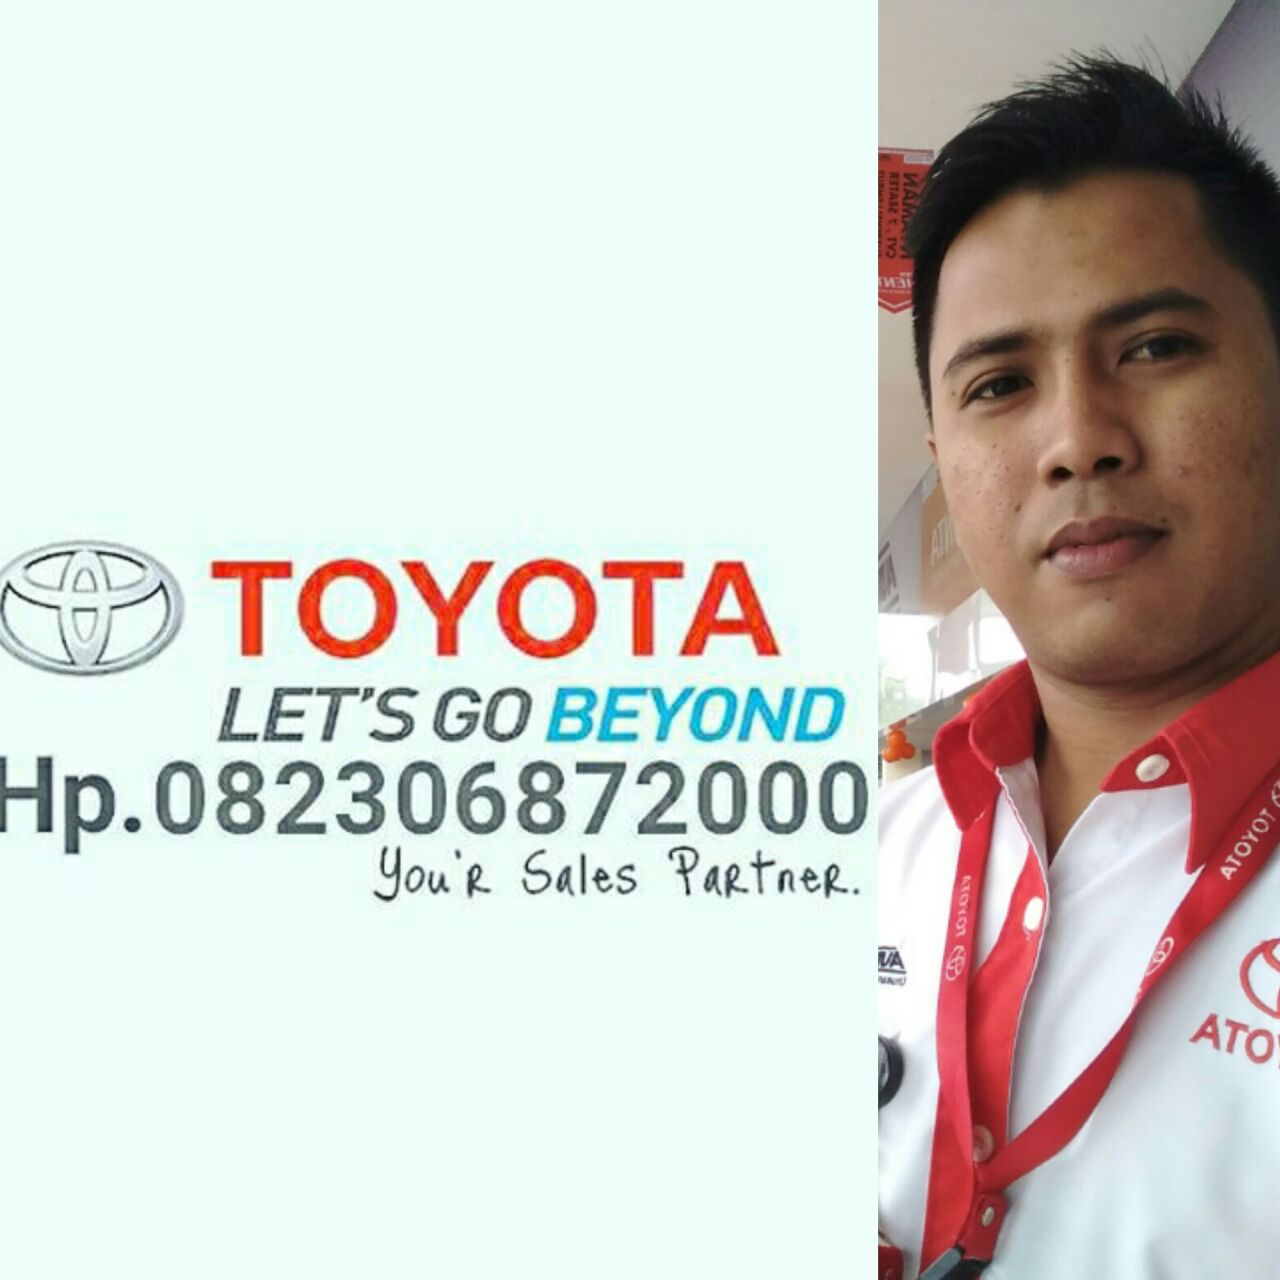 Sales Marketing Mobil Dealer Toyota Lampung Andri